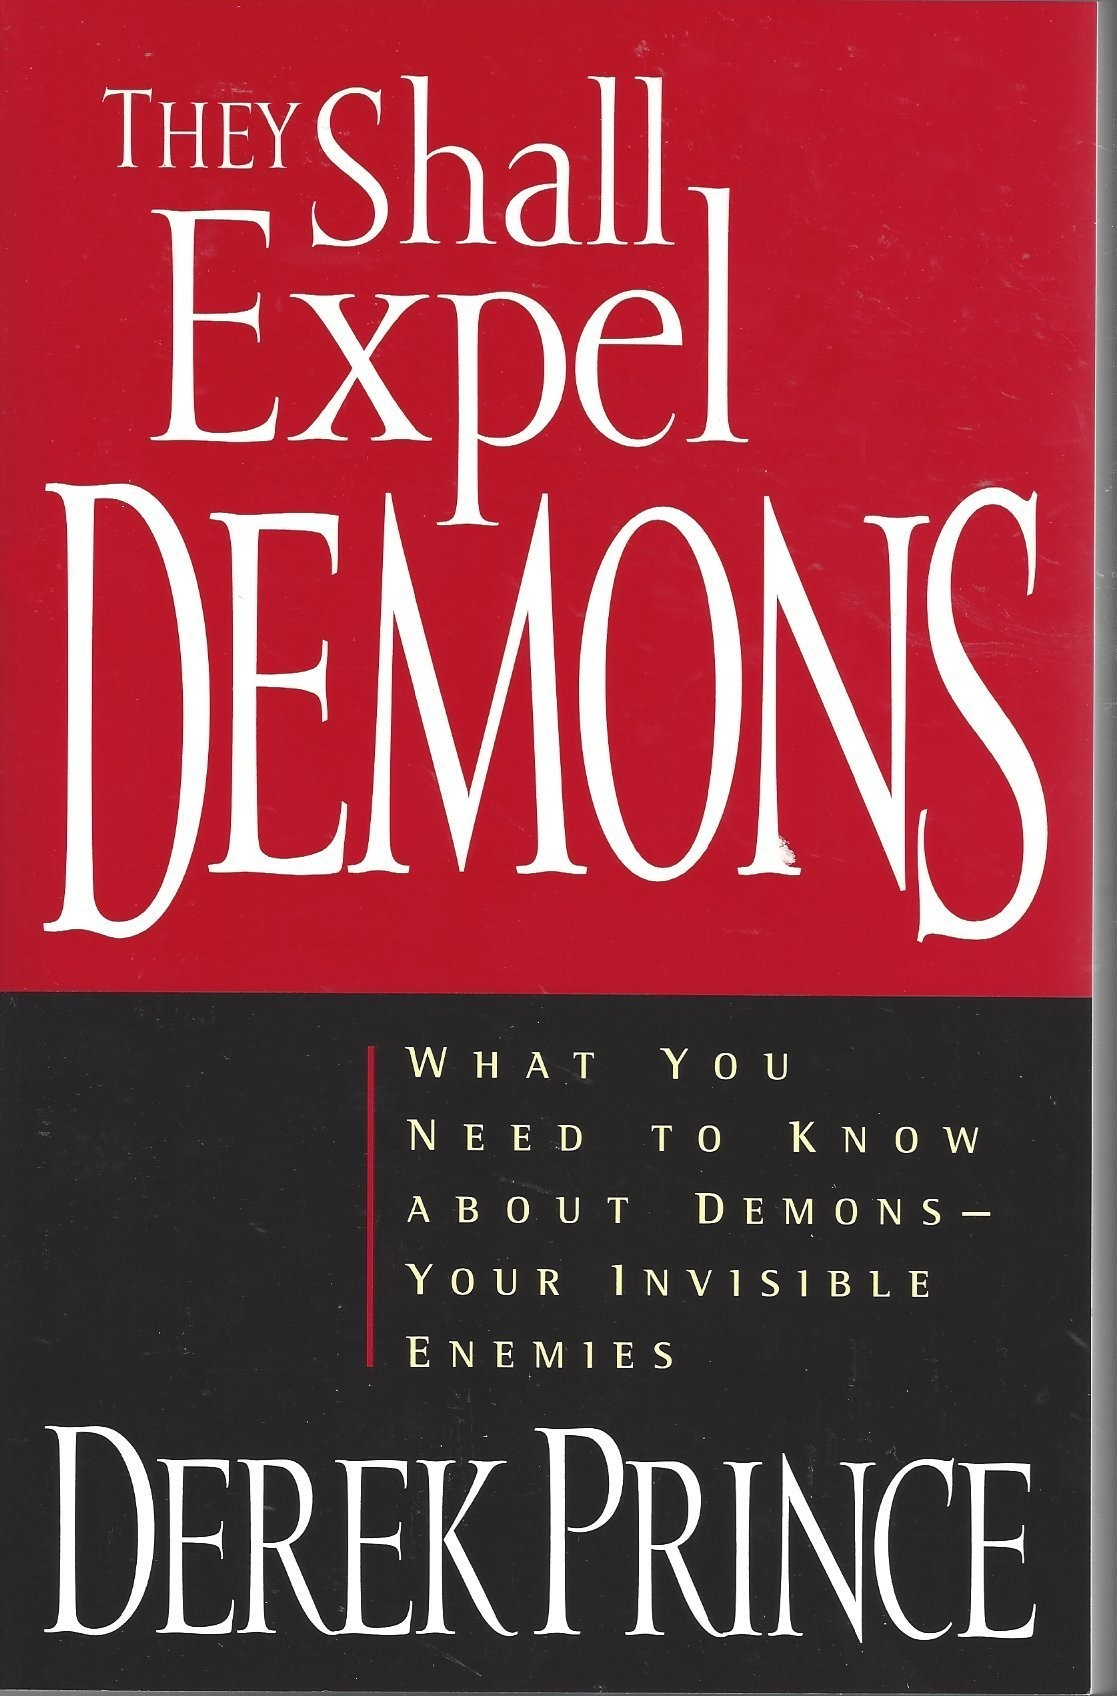 They Shall Expel Demons  (1998)  Front